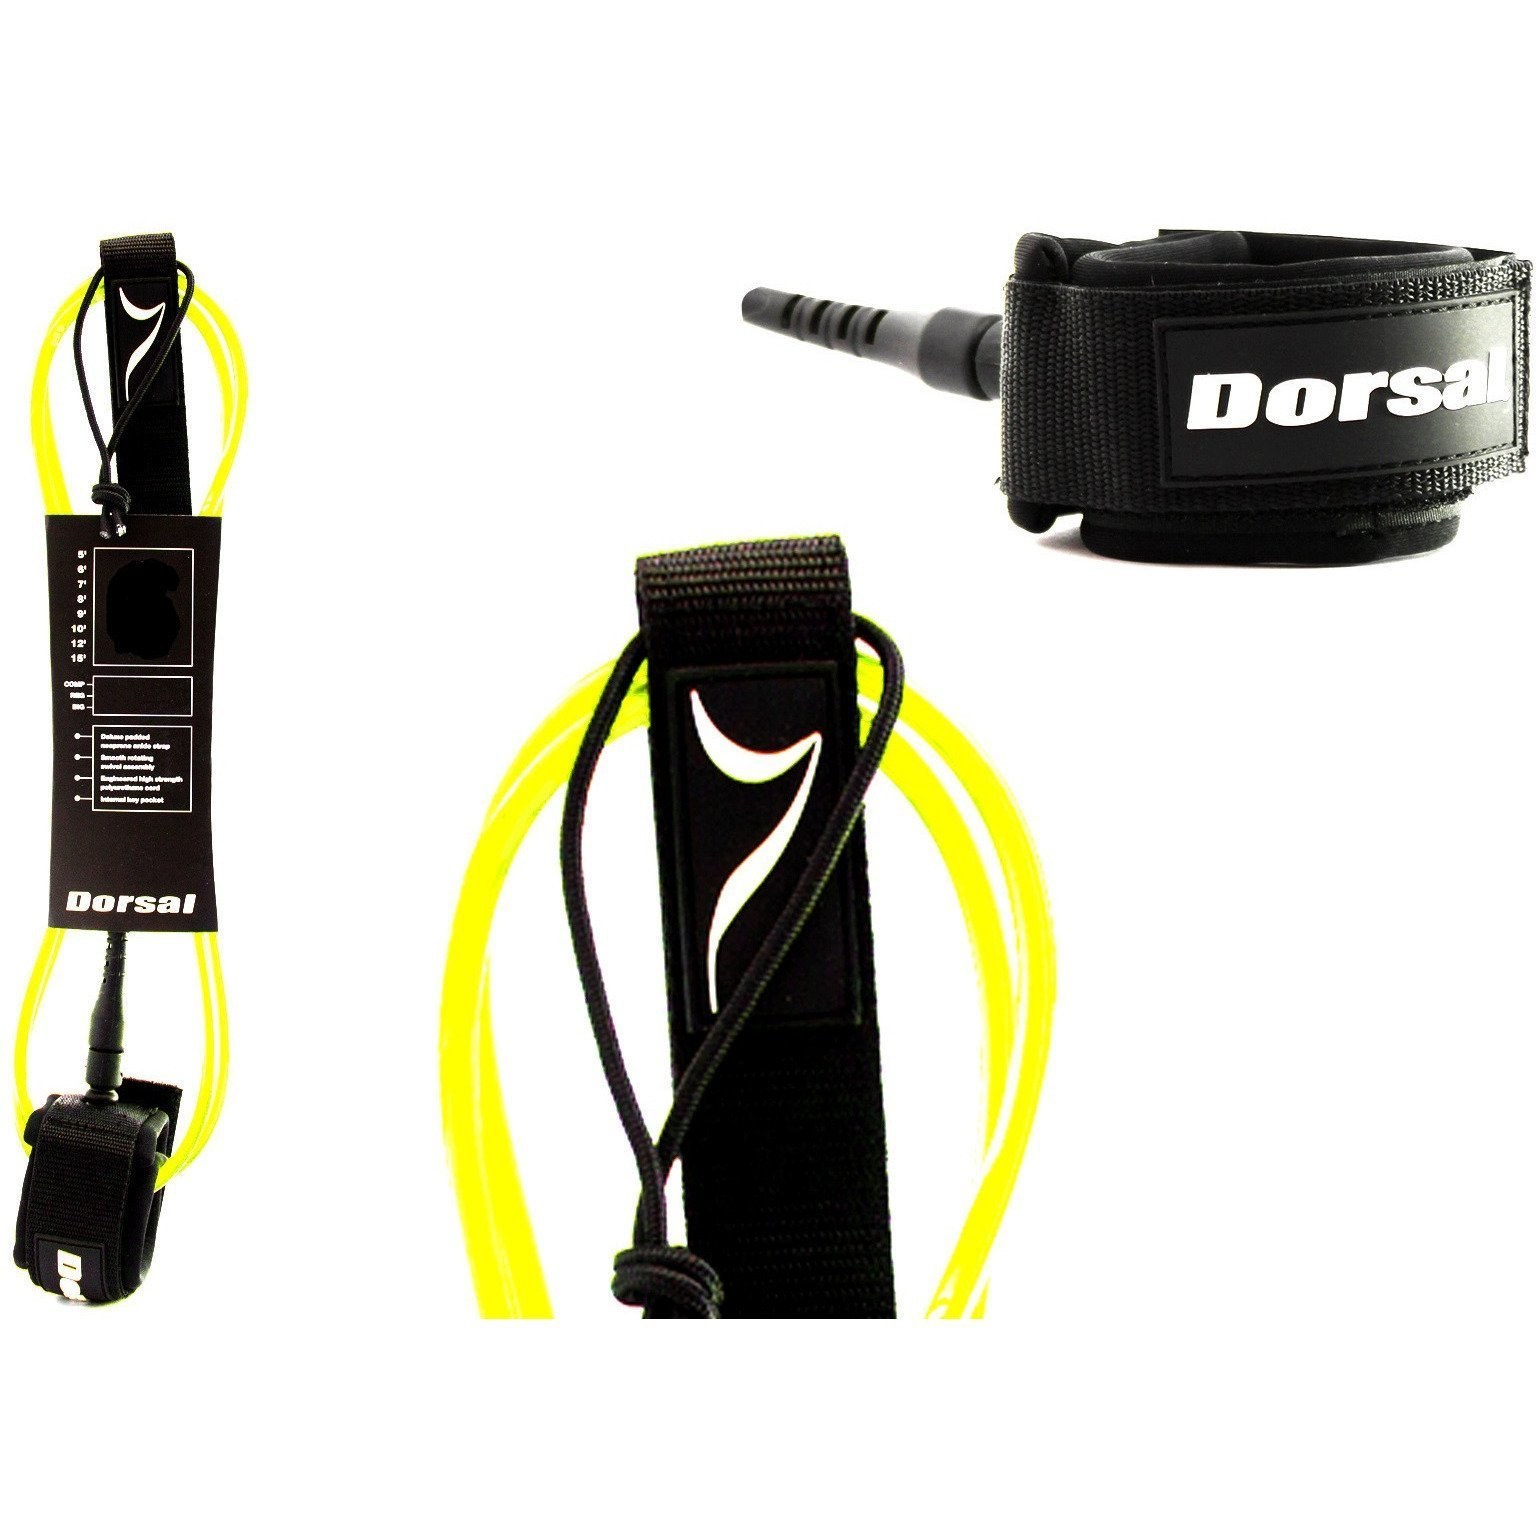 Dorsal Premium Surfboard 6, 7, 8, 9, 10 FT Surf Leash - Yellow 8 FT Longboard/Yellow by Dorsal (Image #1)